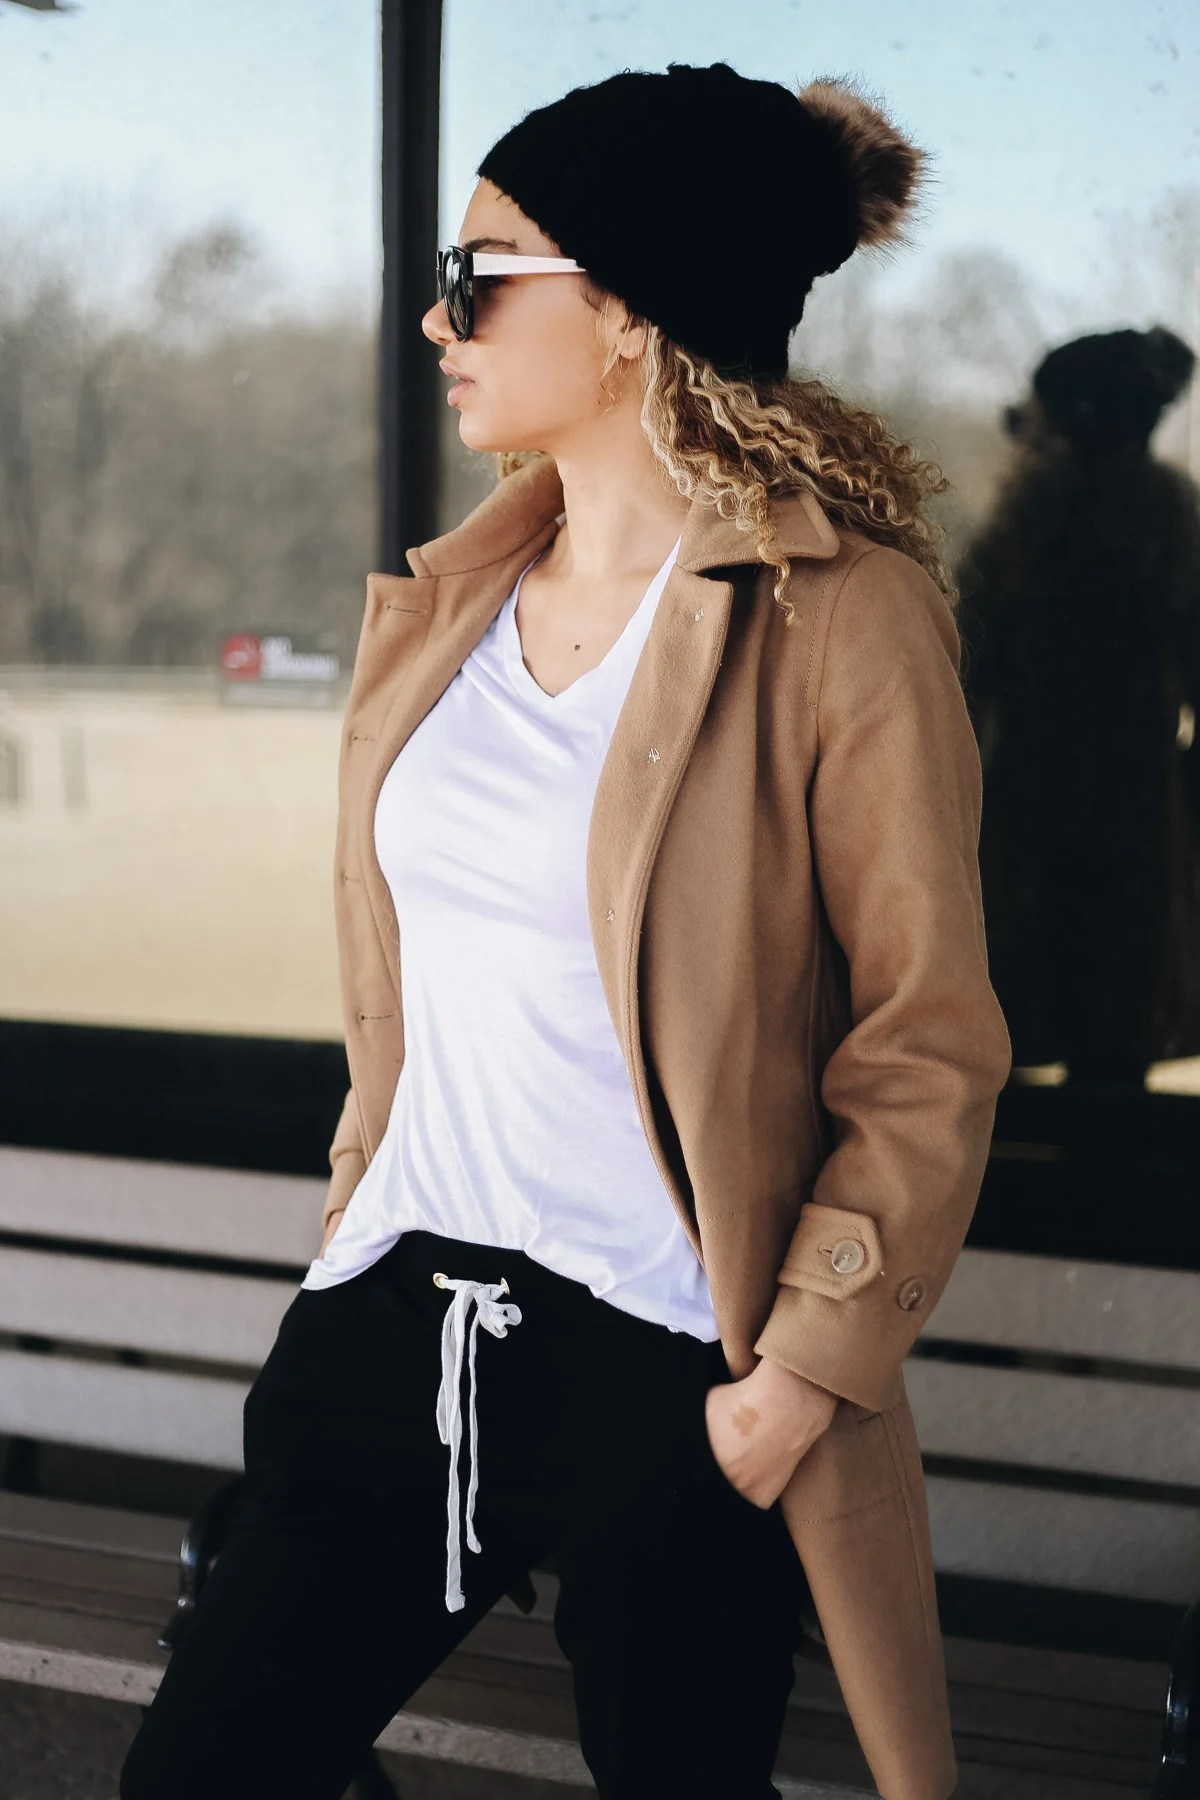 comfy airport outfit with joggers and a camel coat